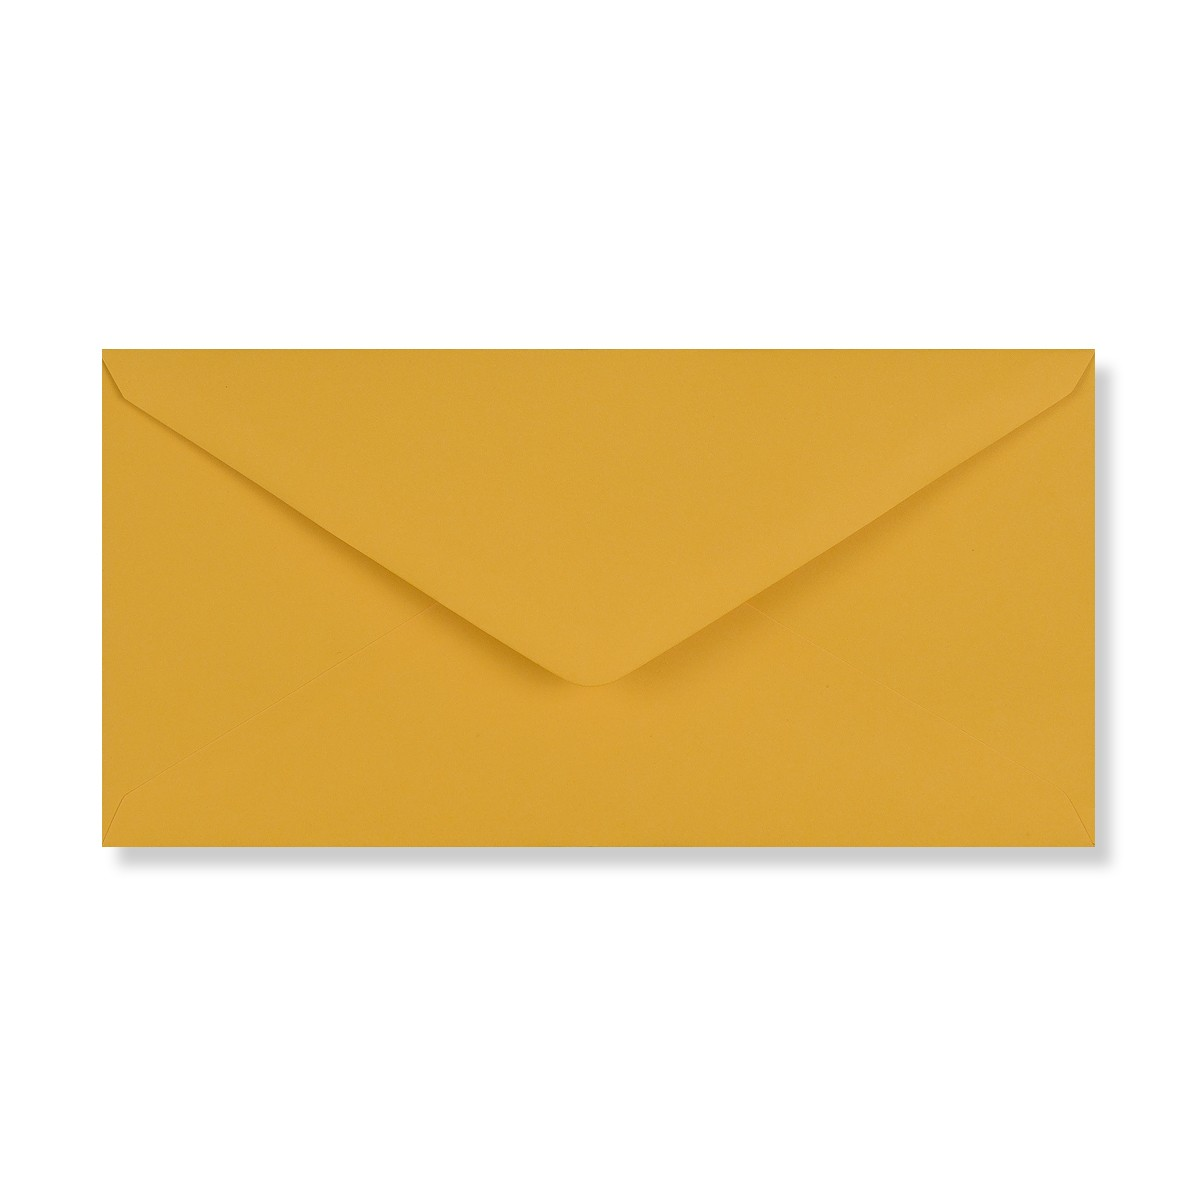 DL DEEP YELLOW ENVELOPES 120GSM